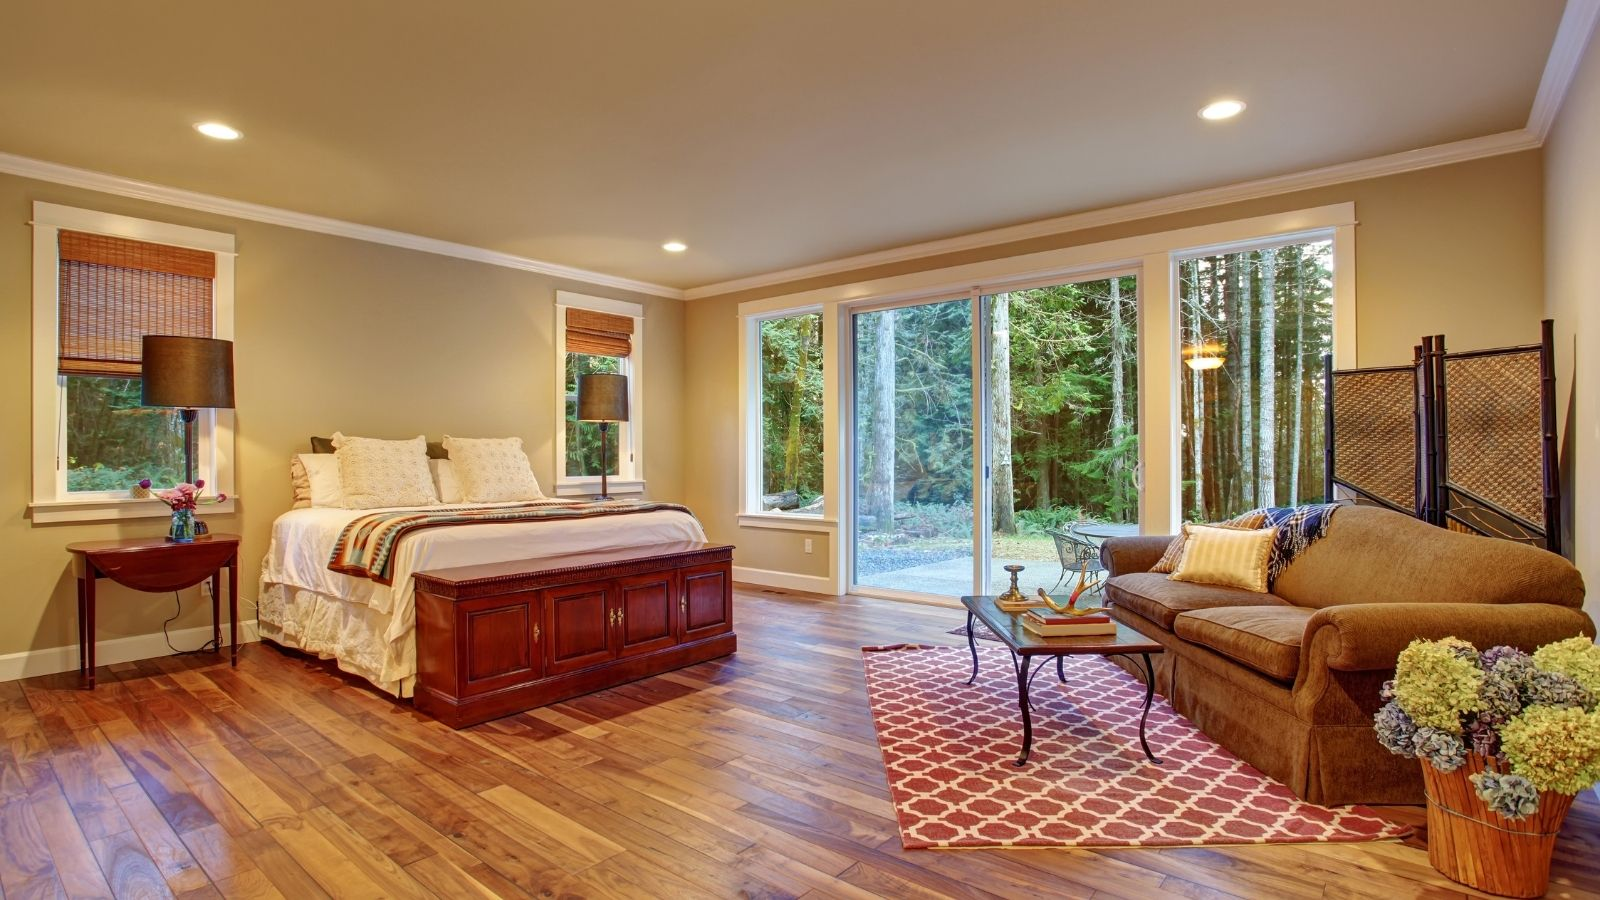 5 Tips For Decorating A Large Master Bedroom